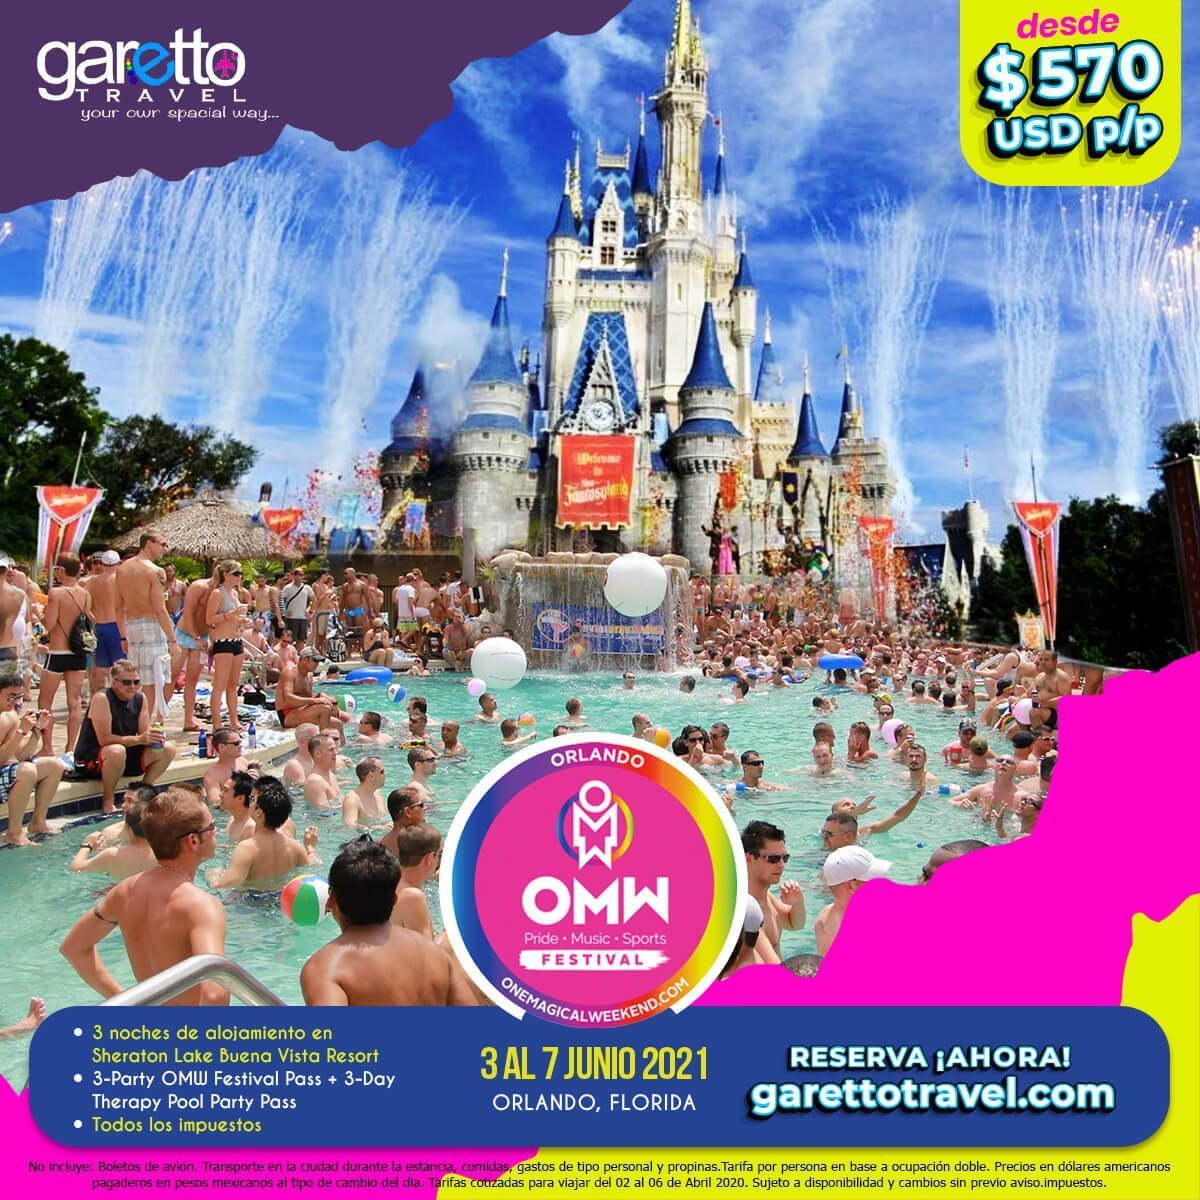 One Magical Weekend 2021 Garetto Travel